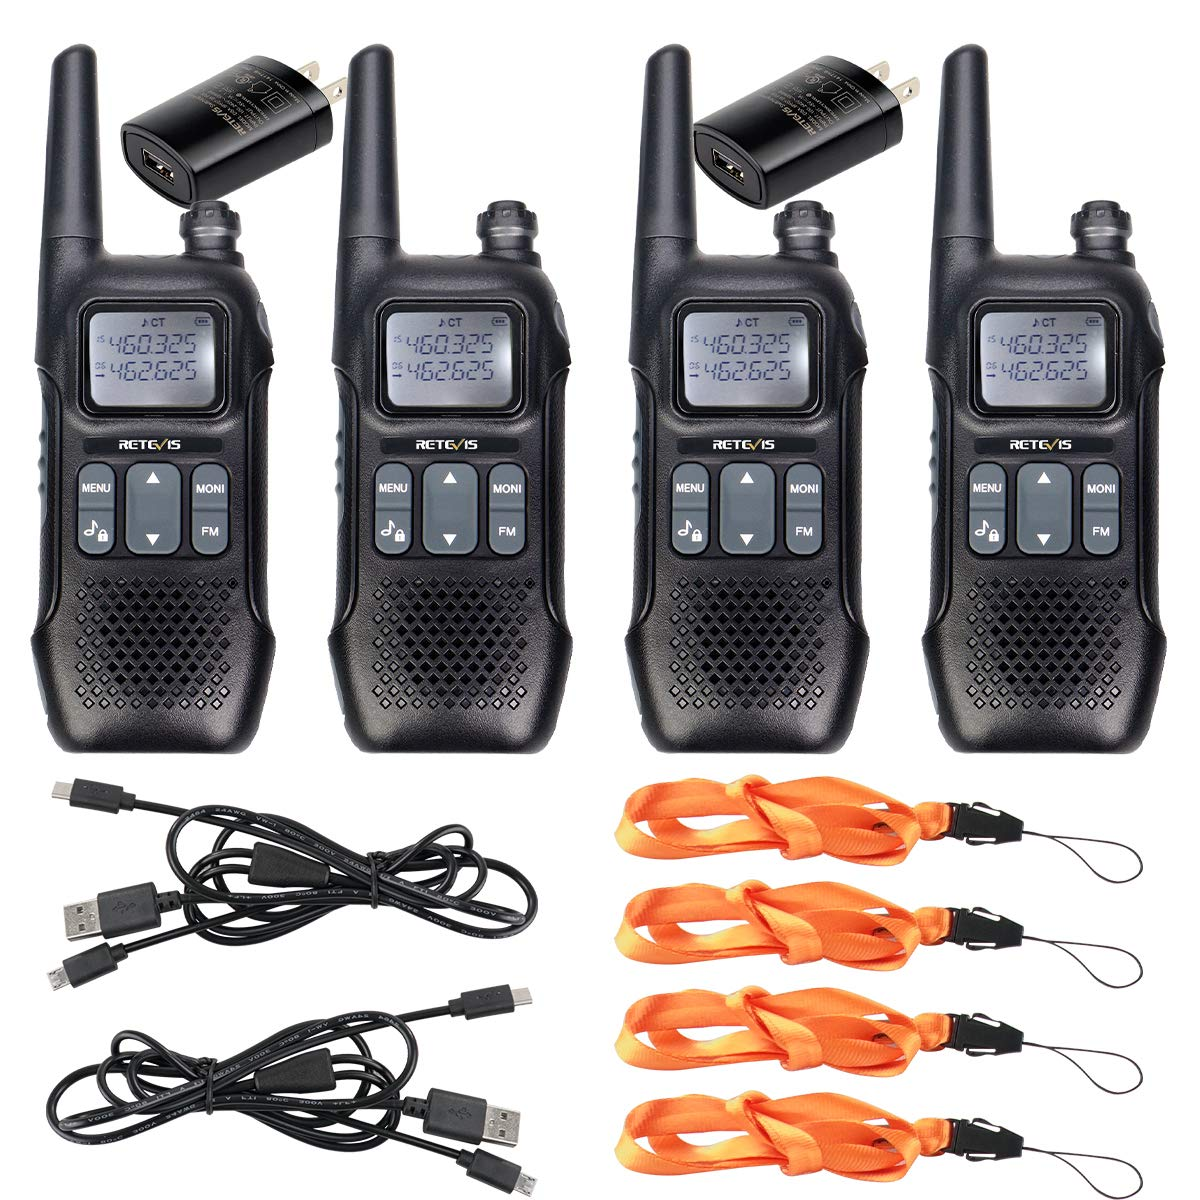 Retevis RT16 2 Way Radio Walkie Talkies Rechargeable FRS NOAA FM Radios Dual Watch 121 Privacy Codes Two-Way Radio for Adult with Flashlight 4 Pack